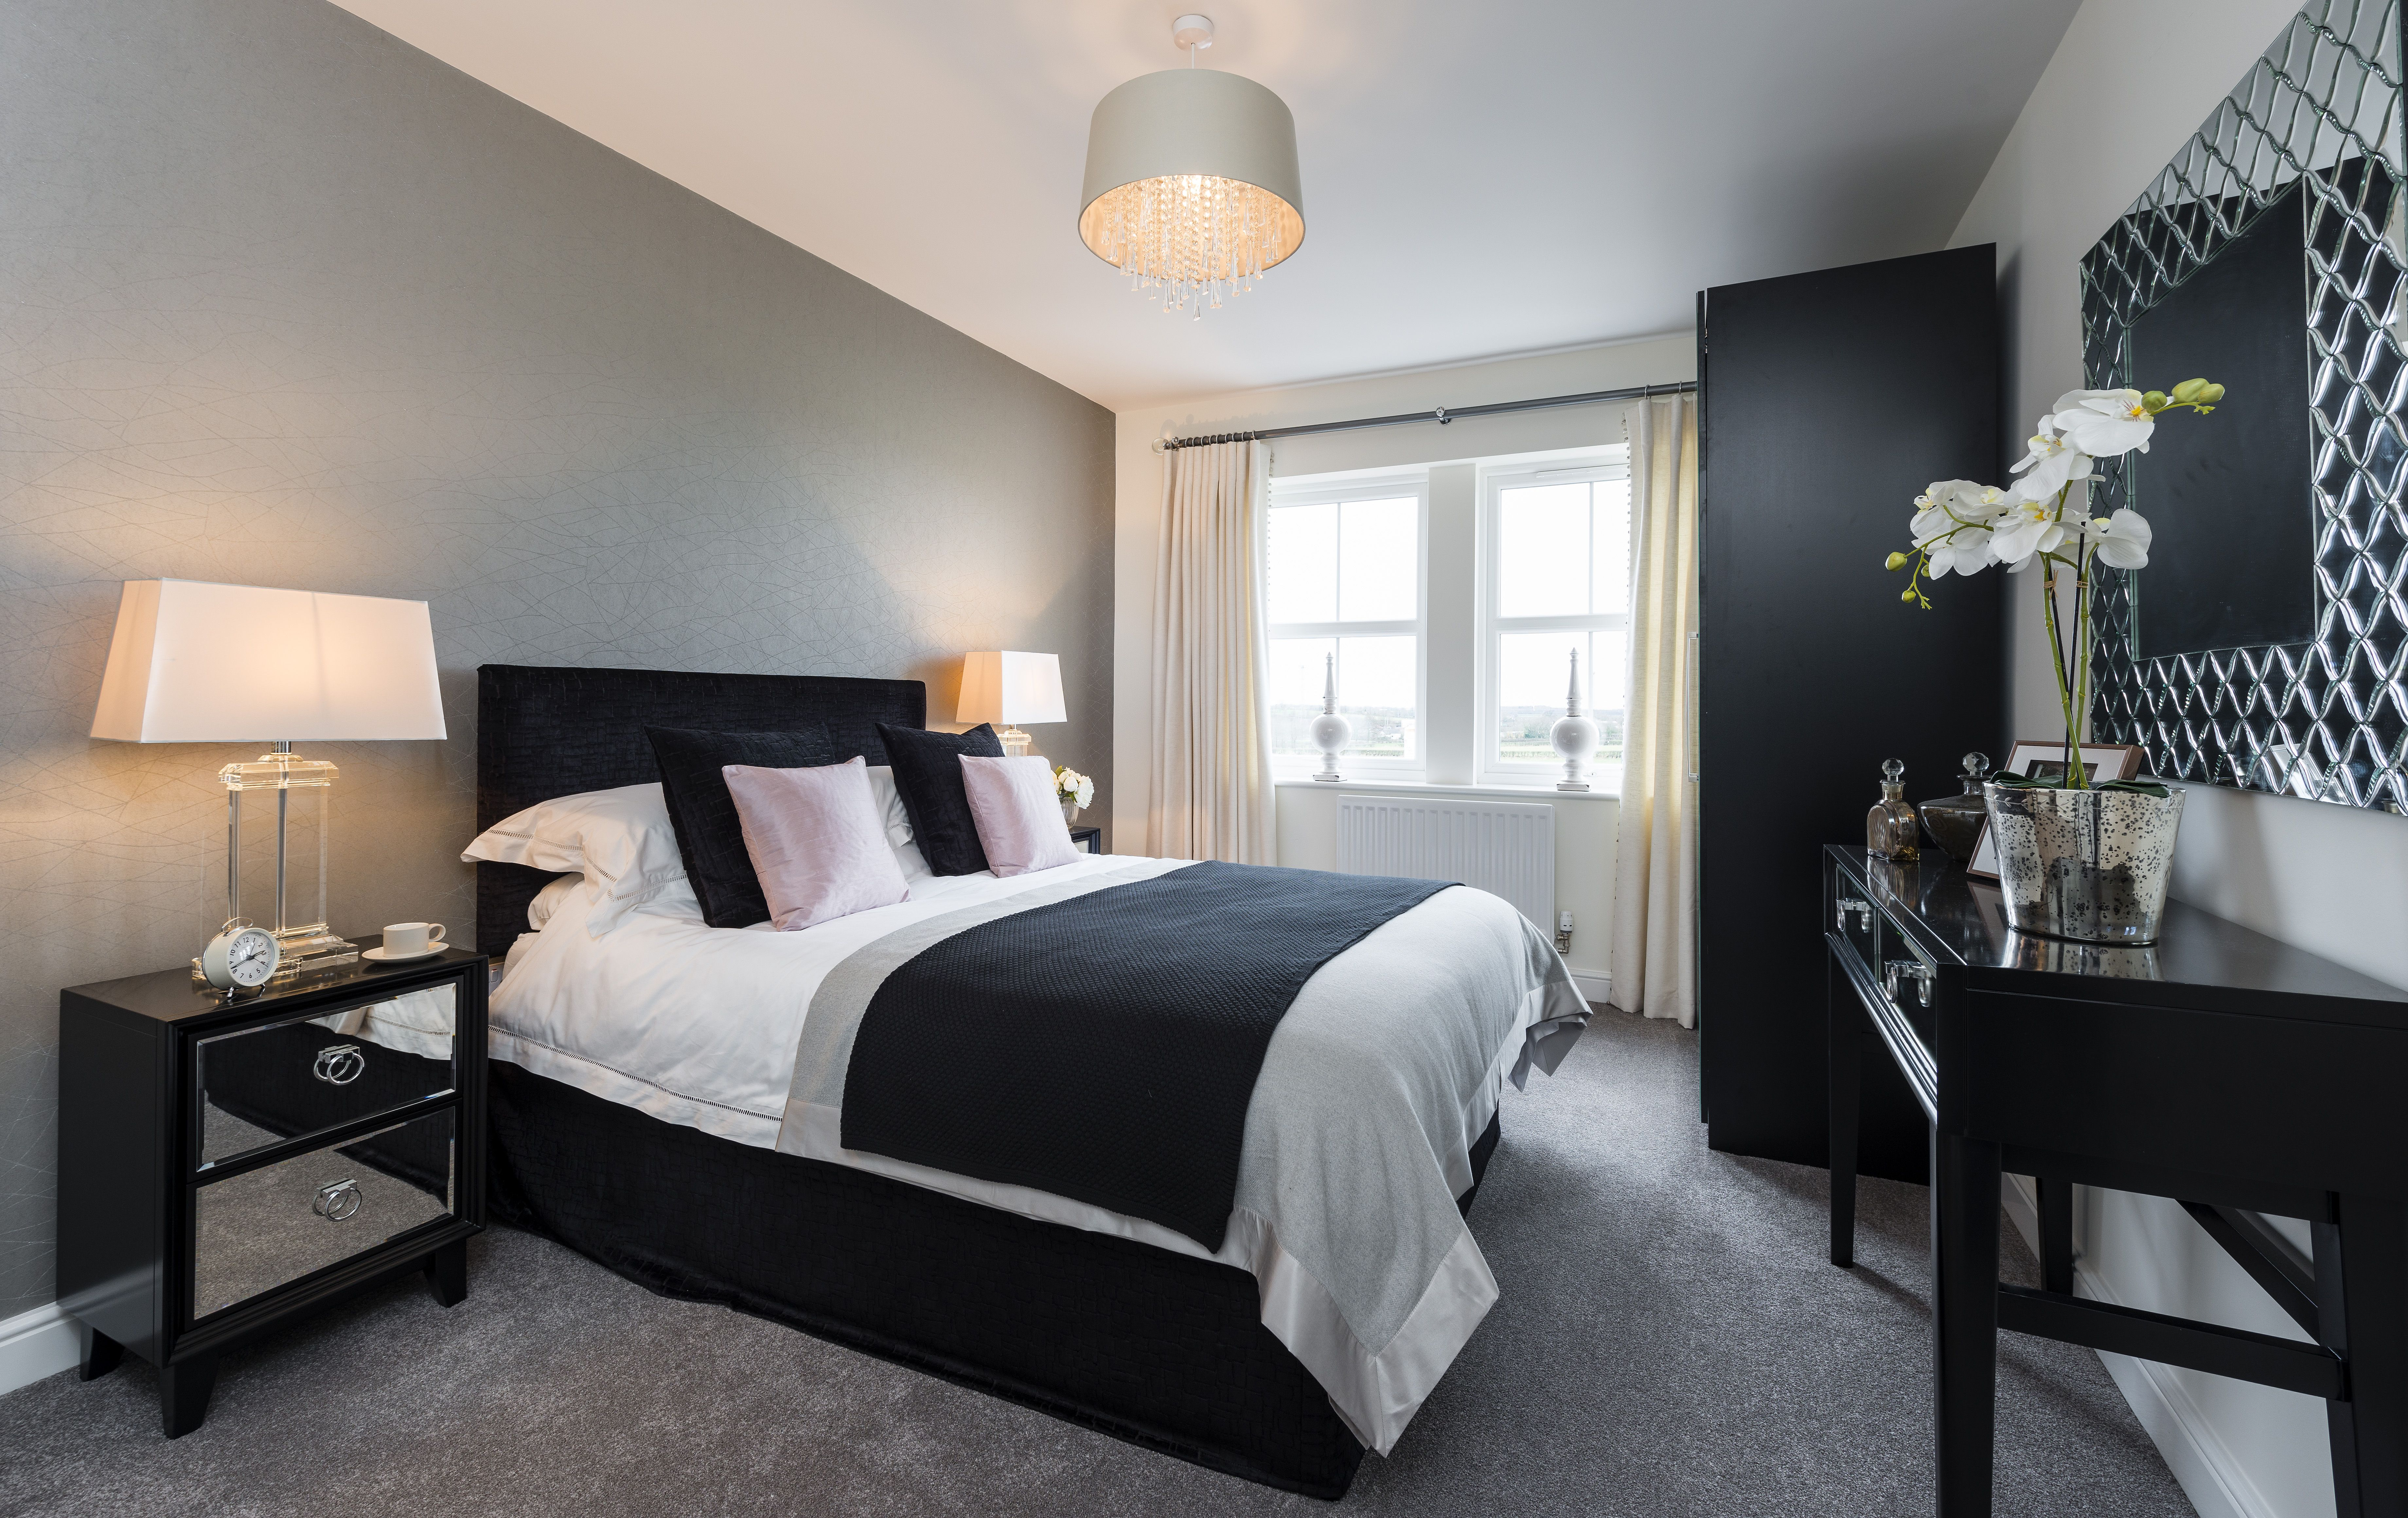 Best 2 To 5 Bed New Build Homes For Sale In Cumbria In 2020 400 x 300